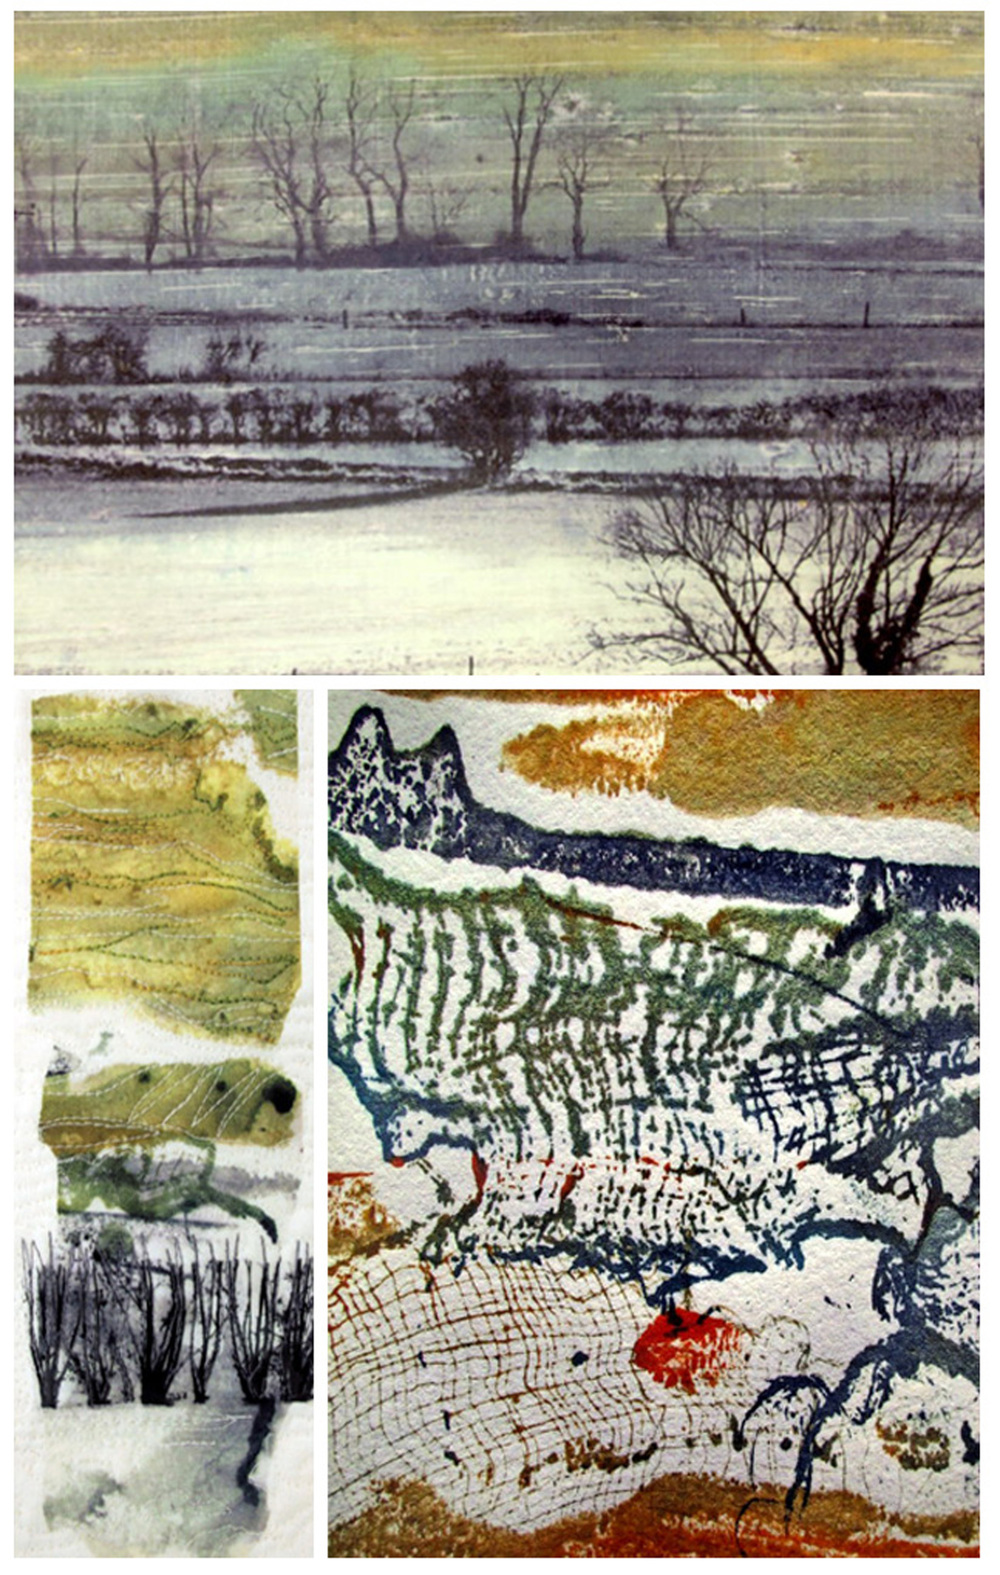 And for Day 5 my latest Facebook contribution which is more of the Somerset inspiration - collograph prints that have been developed already with more to come. Thanks for reading and please comment if you would like.   my other ArtSpace blog     www.sandrameech-art.blogspot.com  will cover some similar information but the real focus for news will gradually come over to this site. Watch this space.